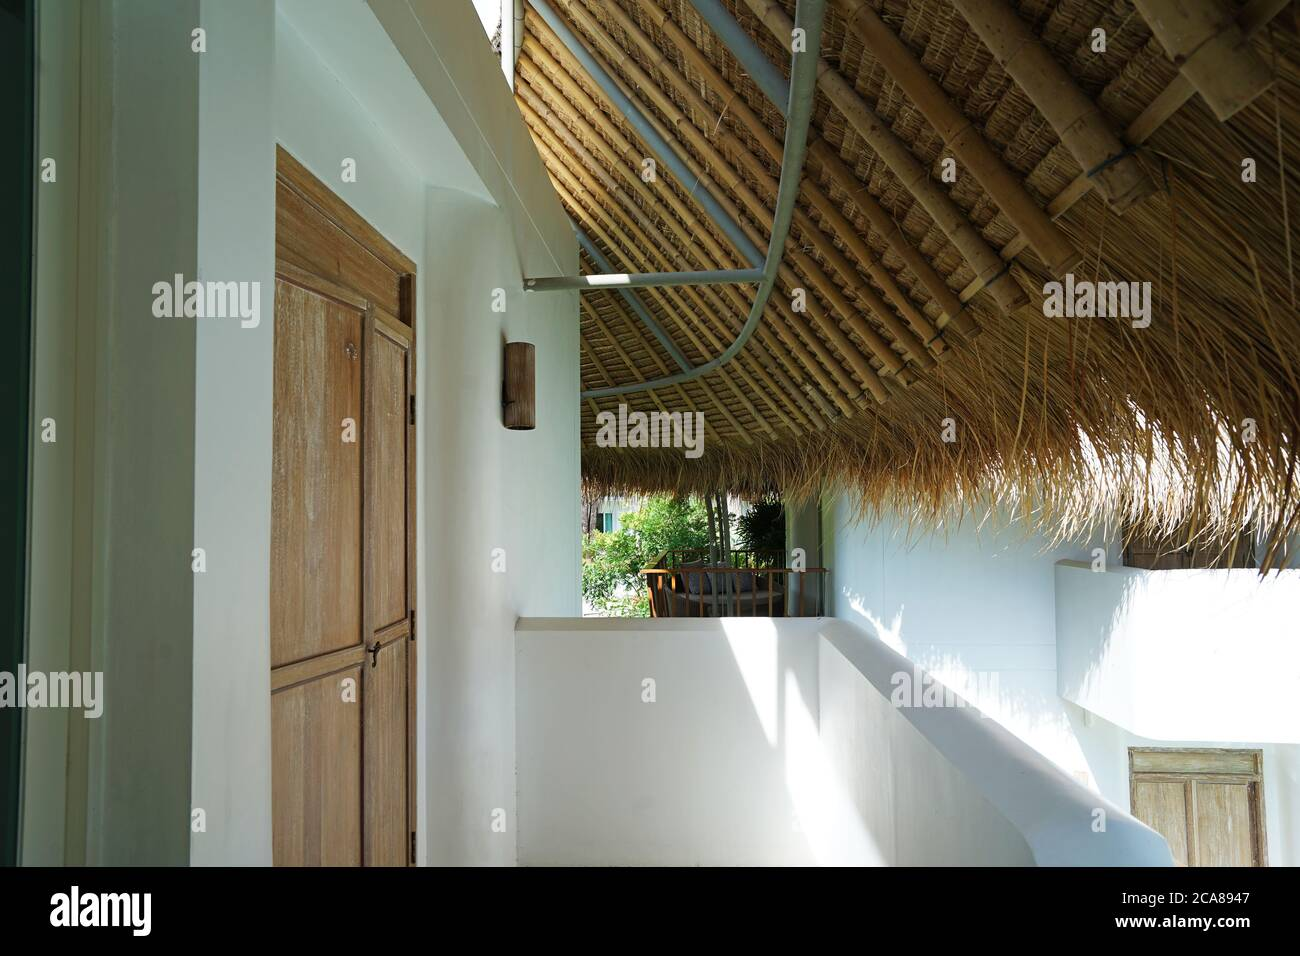 Contemporary Roof Terrace Design High Resolution Stock Photography And Images Alamy